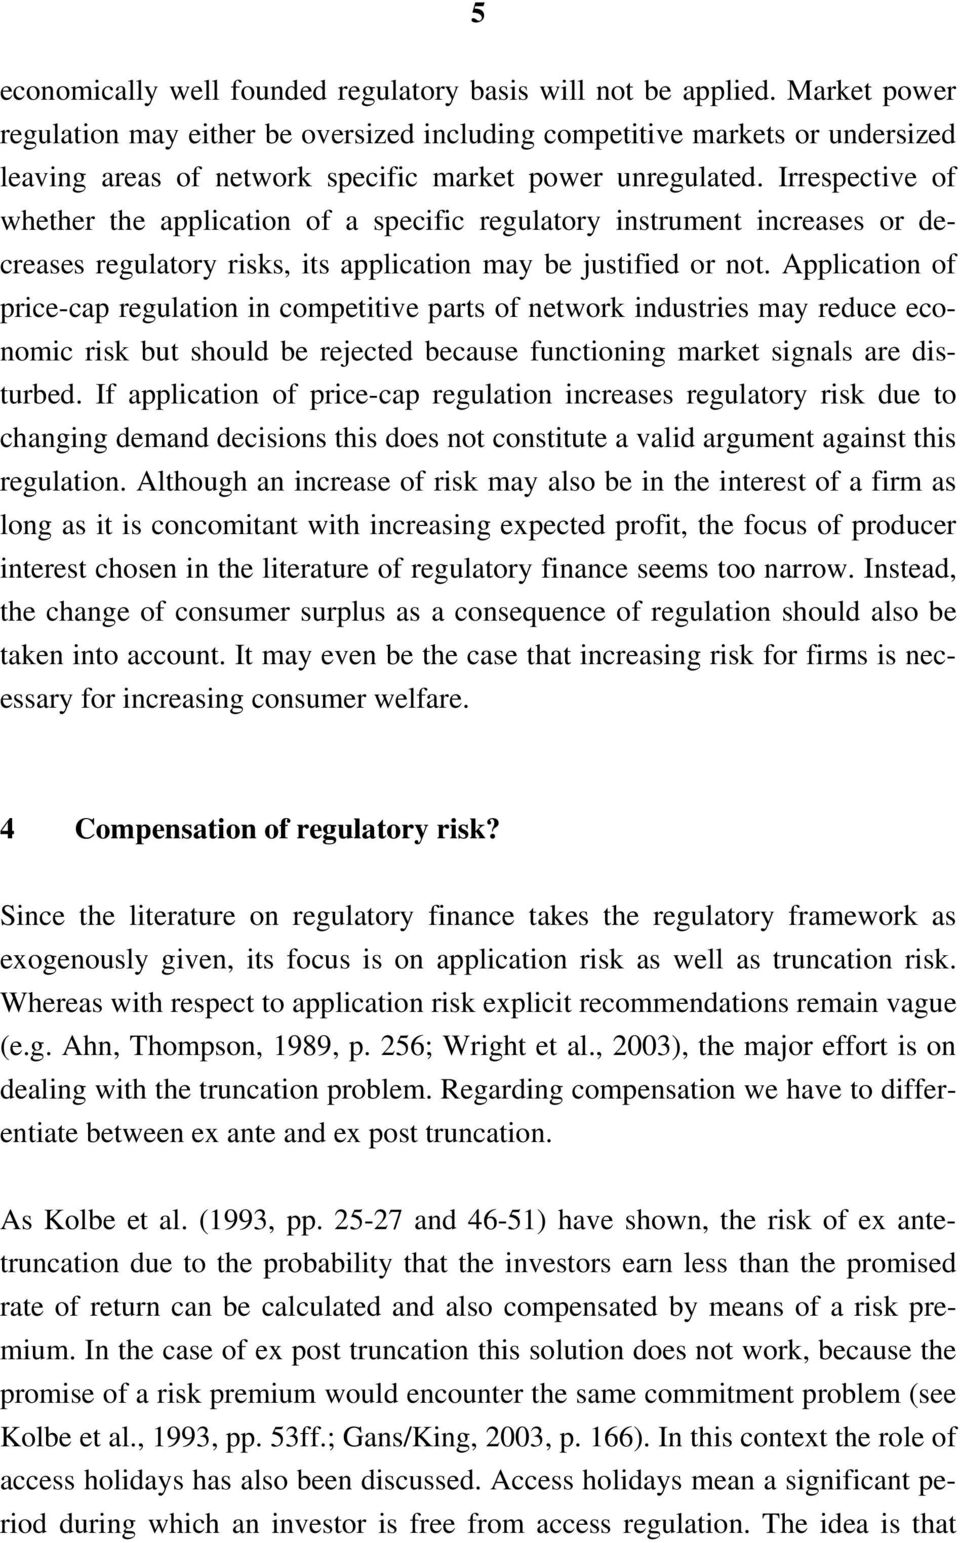 Irrespective of whether the application of a specific regulatory instrument increases or decreases regulatory risks, its application may be justified or not.